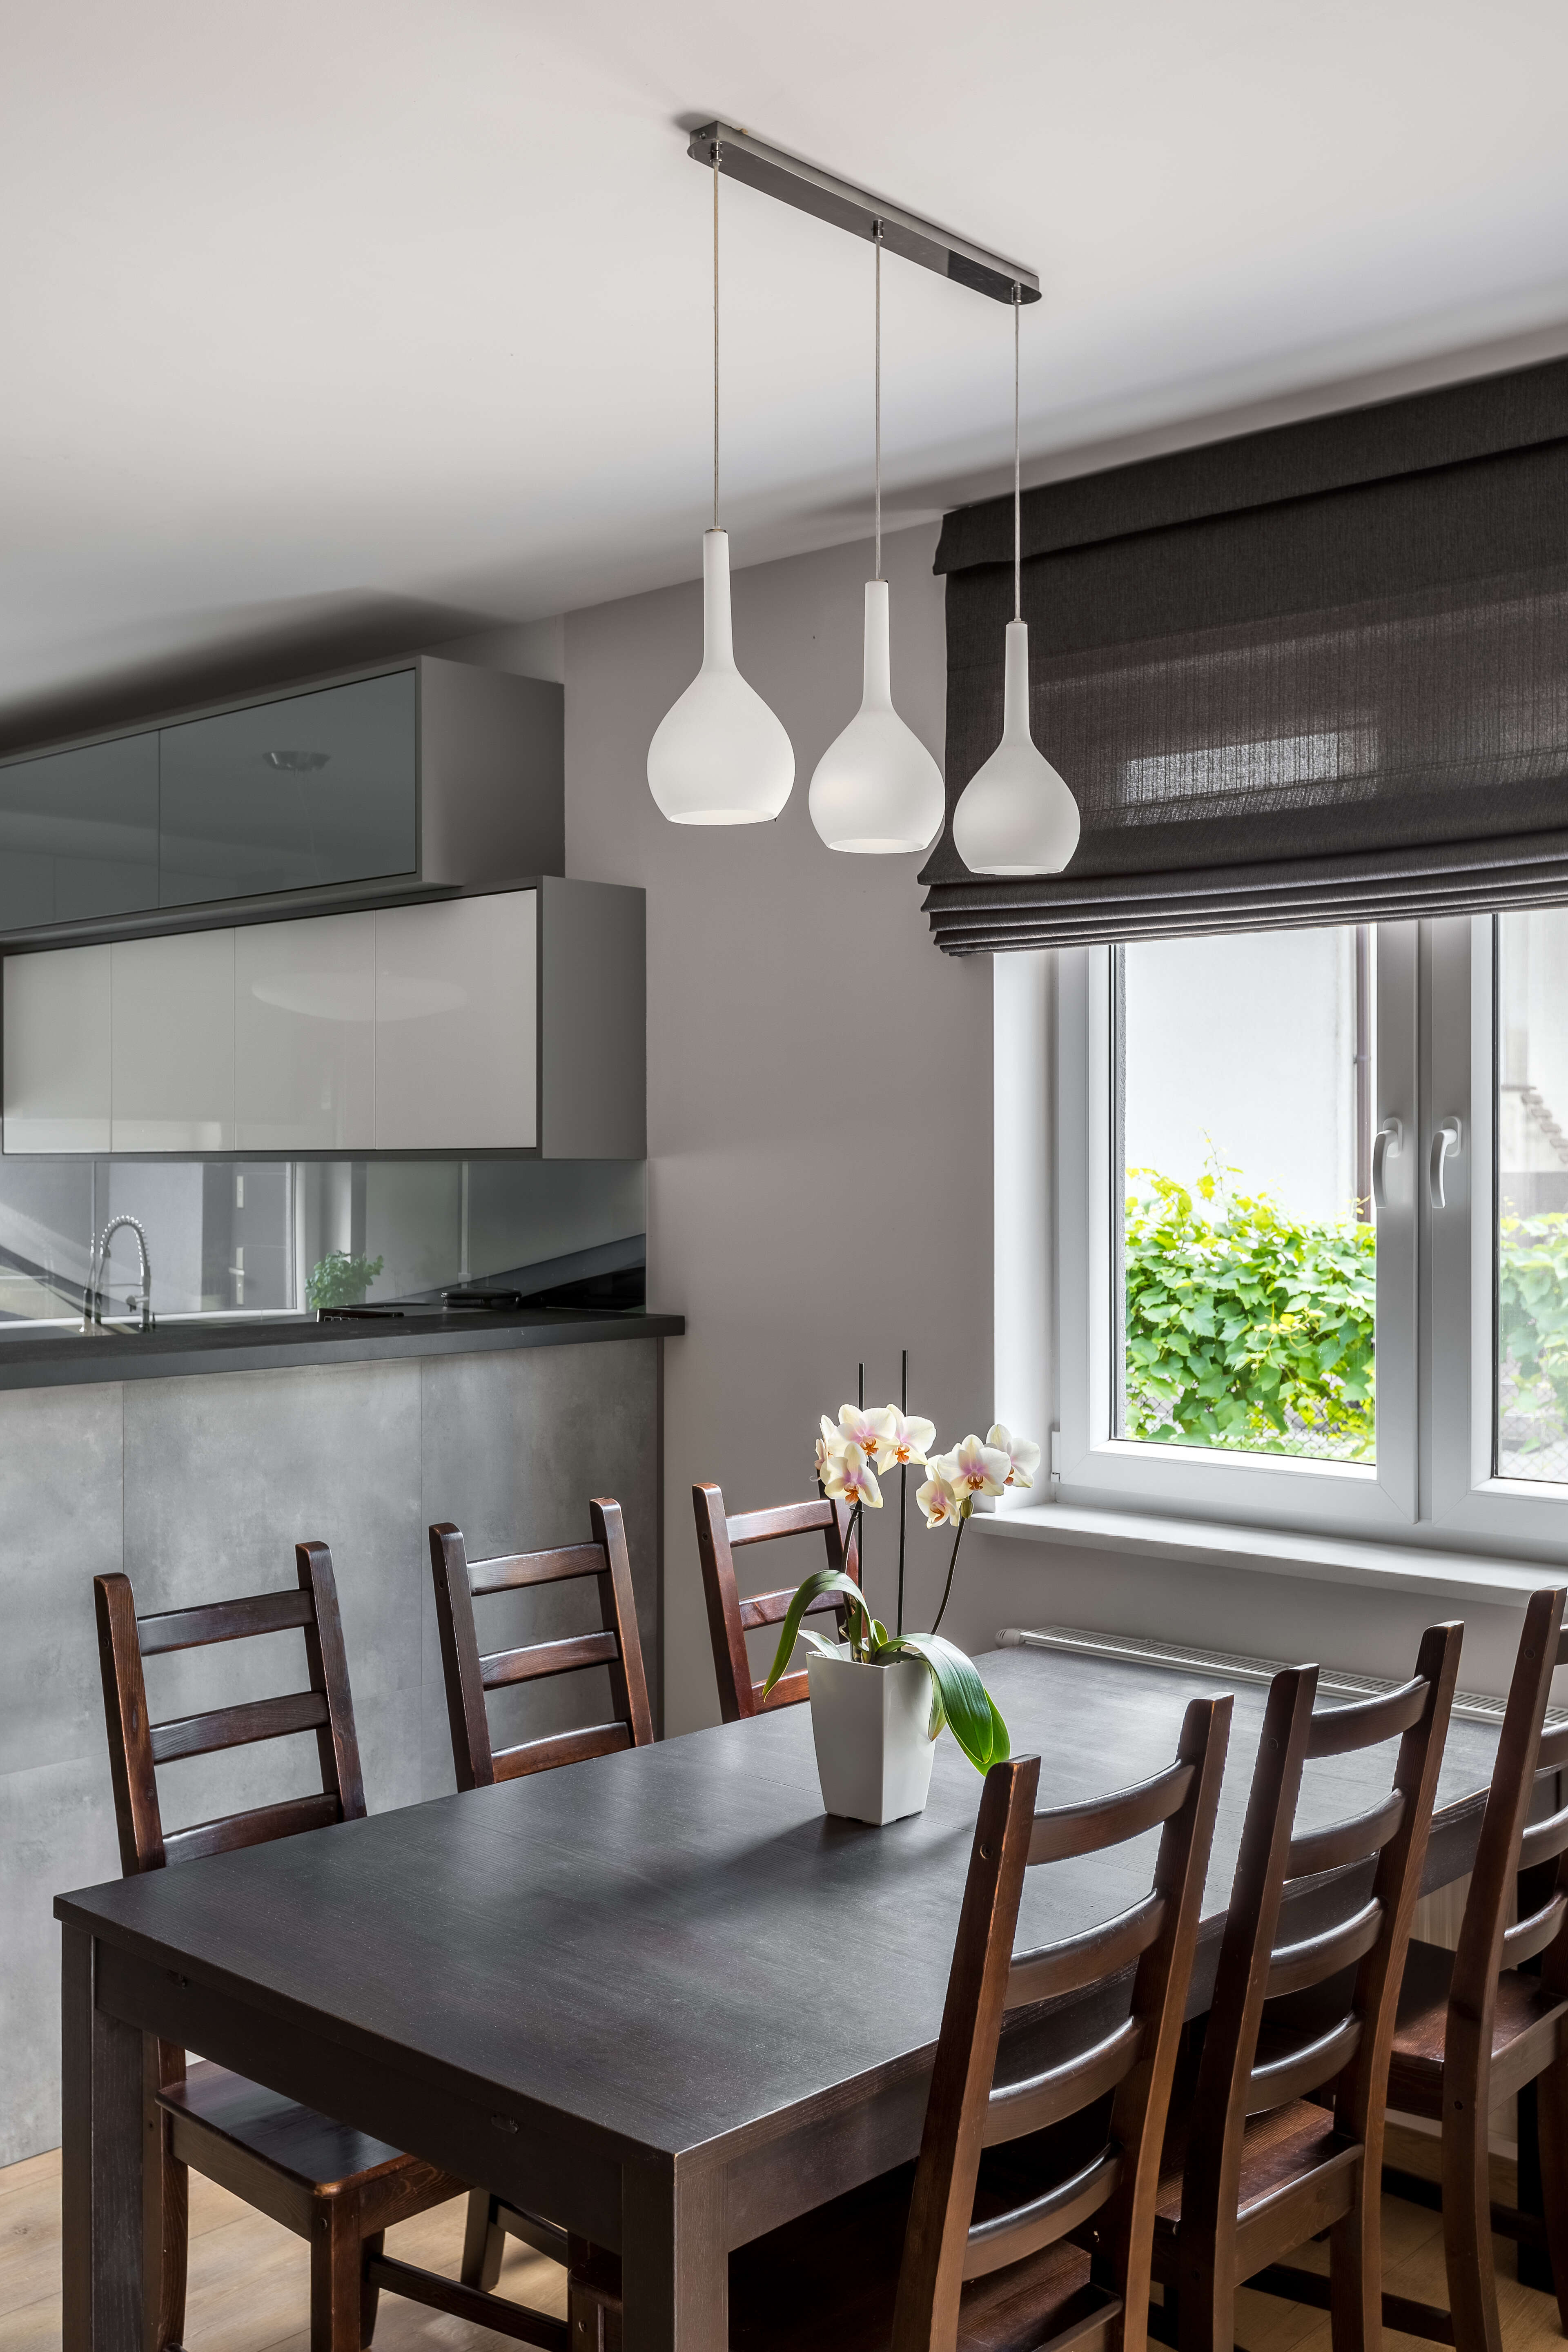 Buy Customised roller blinds Singapore for your space